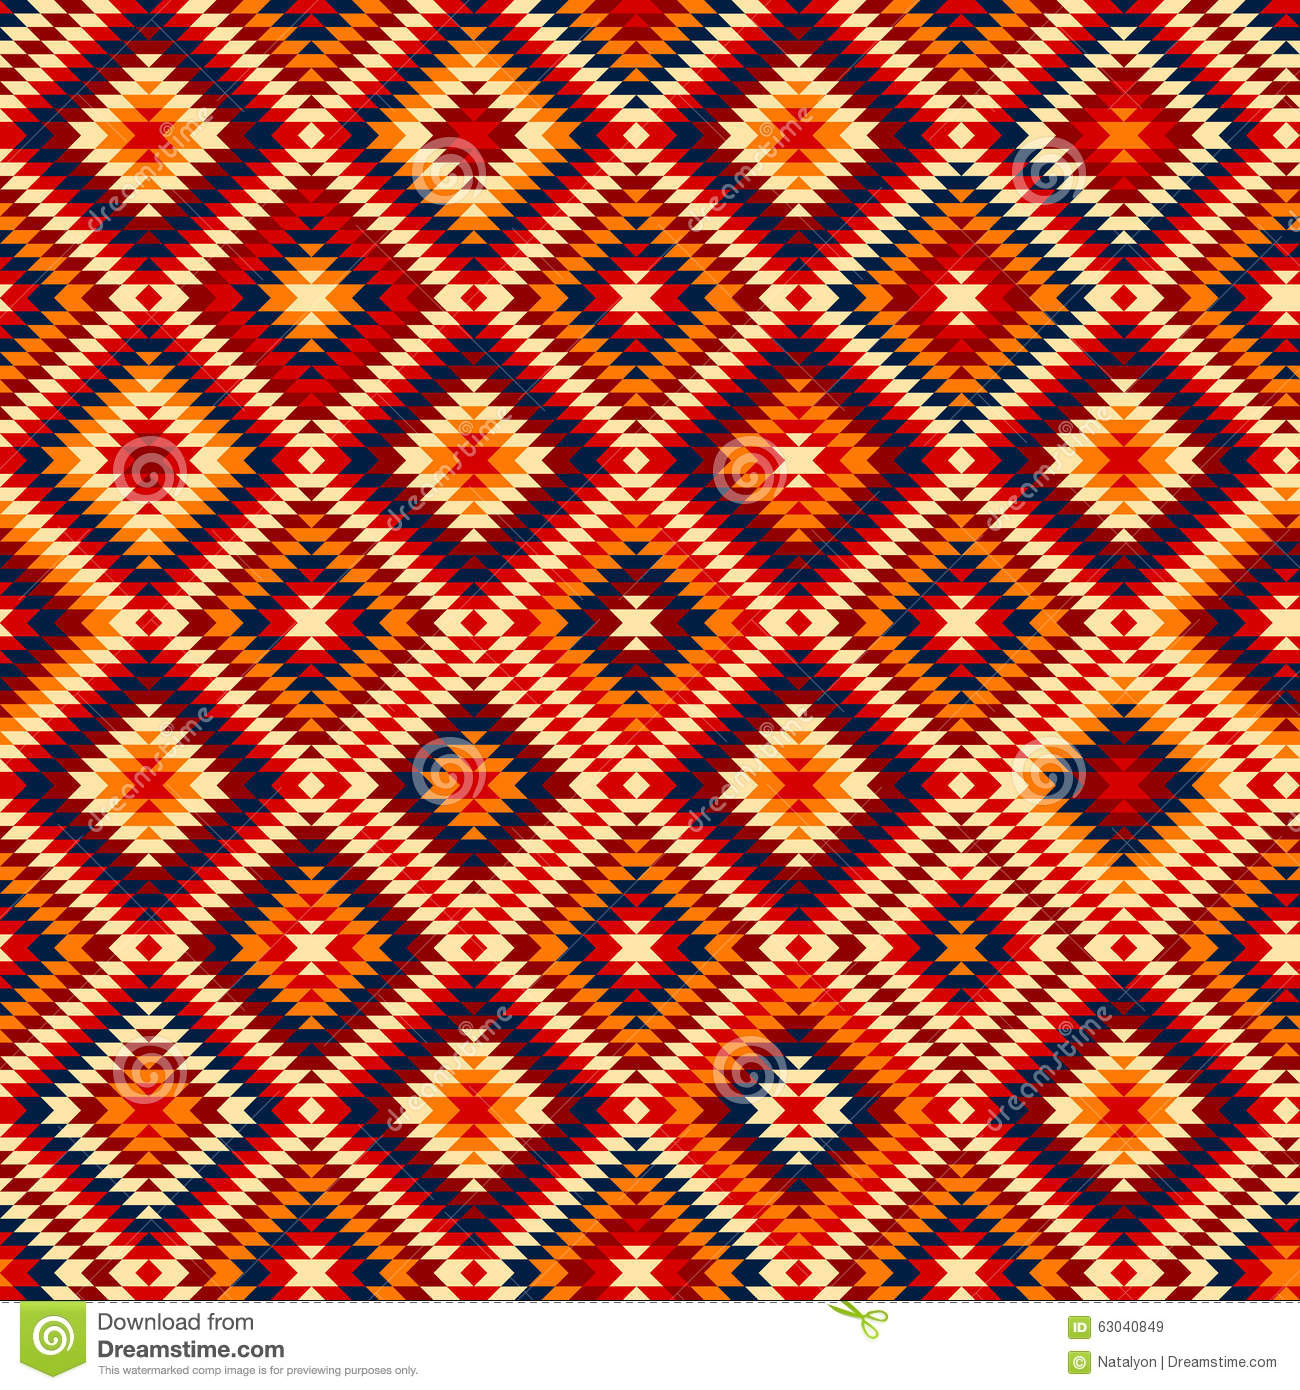 Colorful Red Yellow Blue Aztec Ornaments Geometric Ethnic